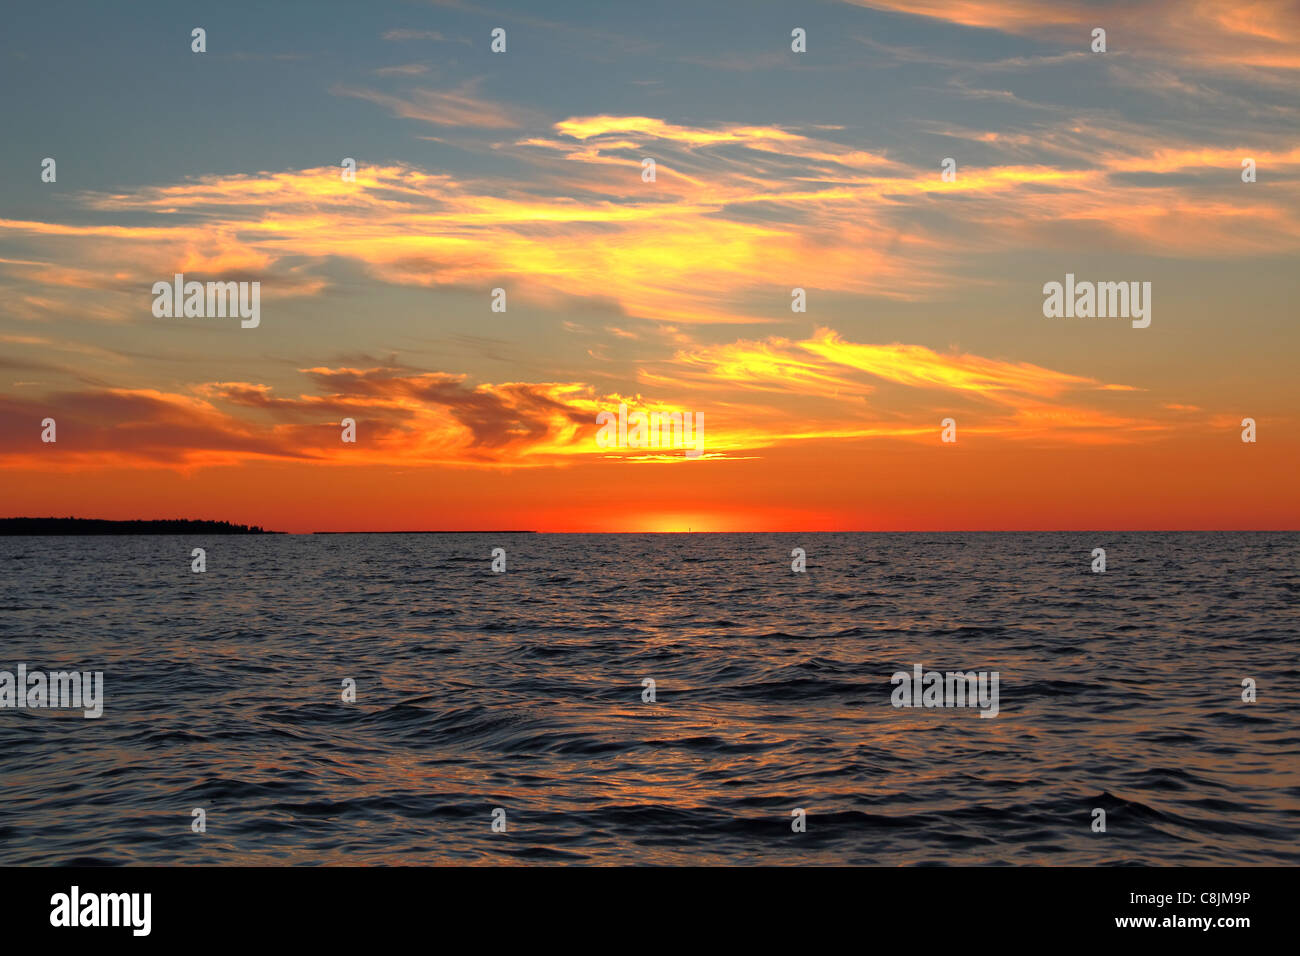 sunset on lake - Stock Image